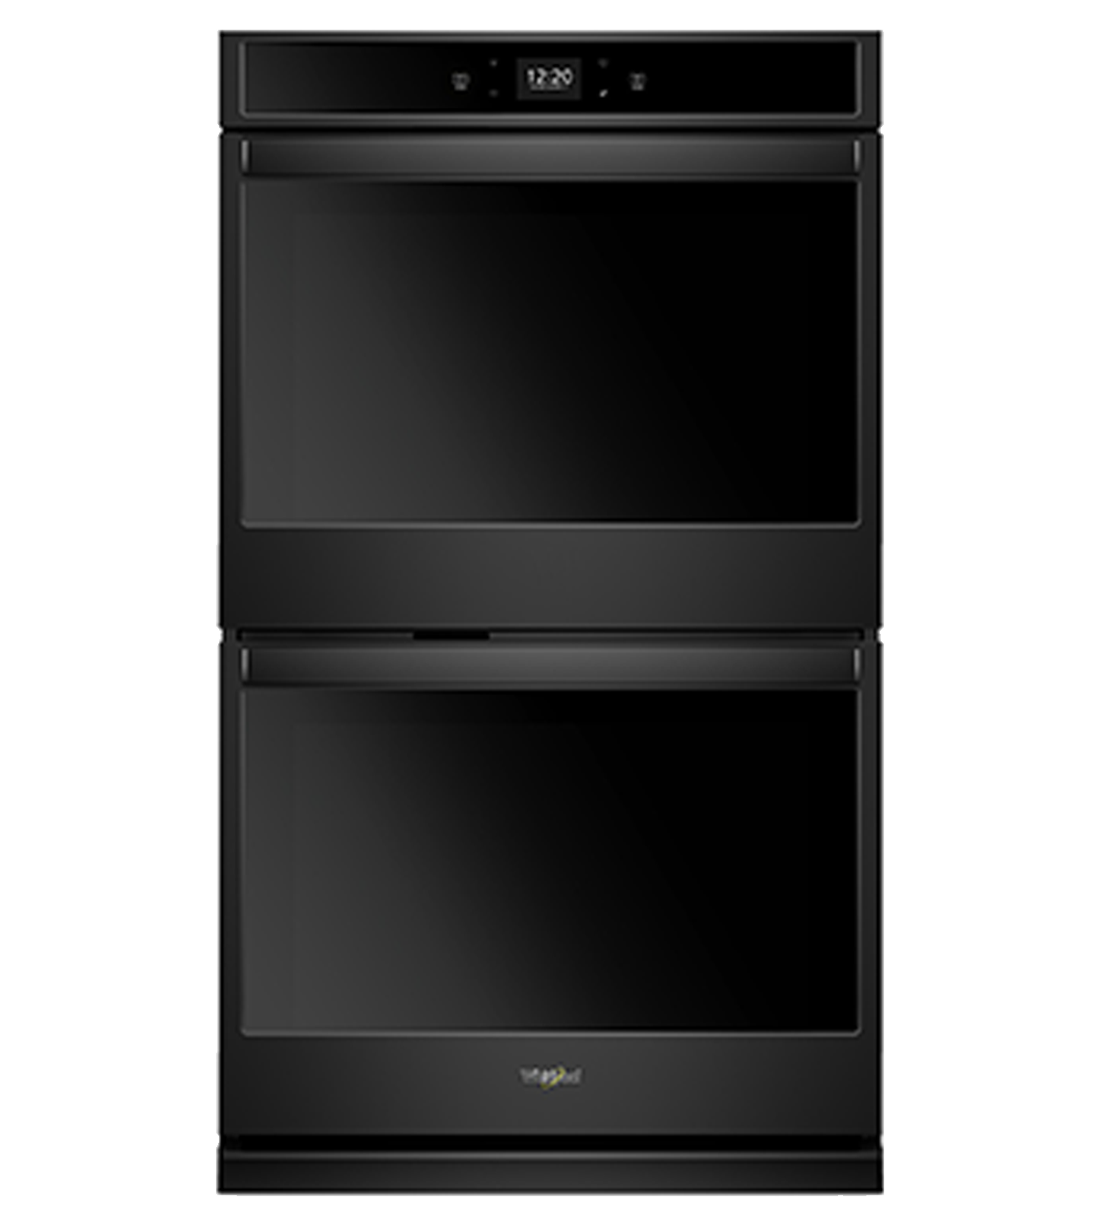 Whirlpool Wall oven in Black color showcased by Corbeil Electro Store